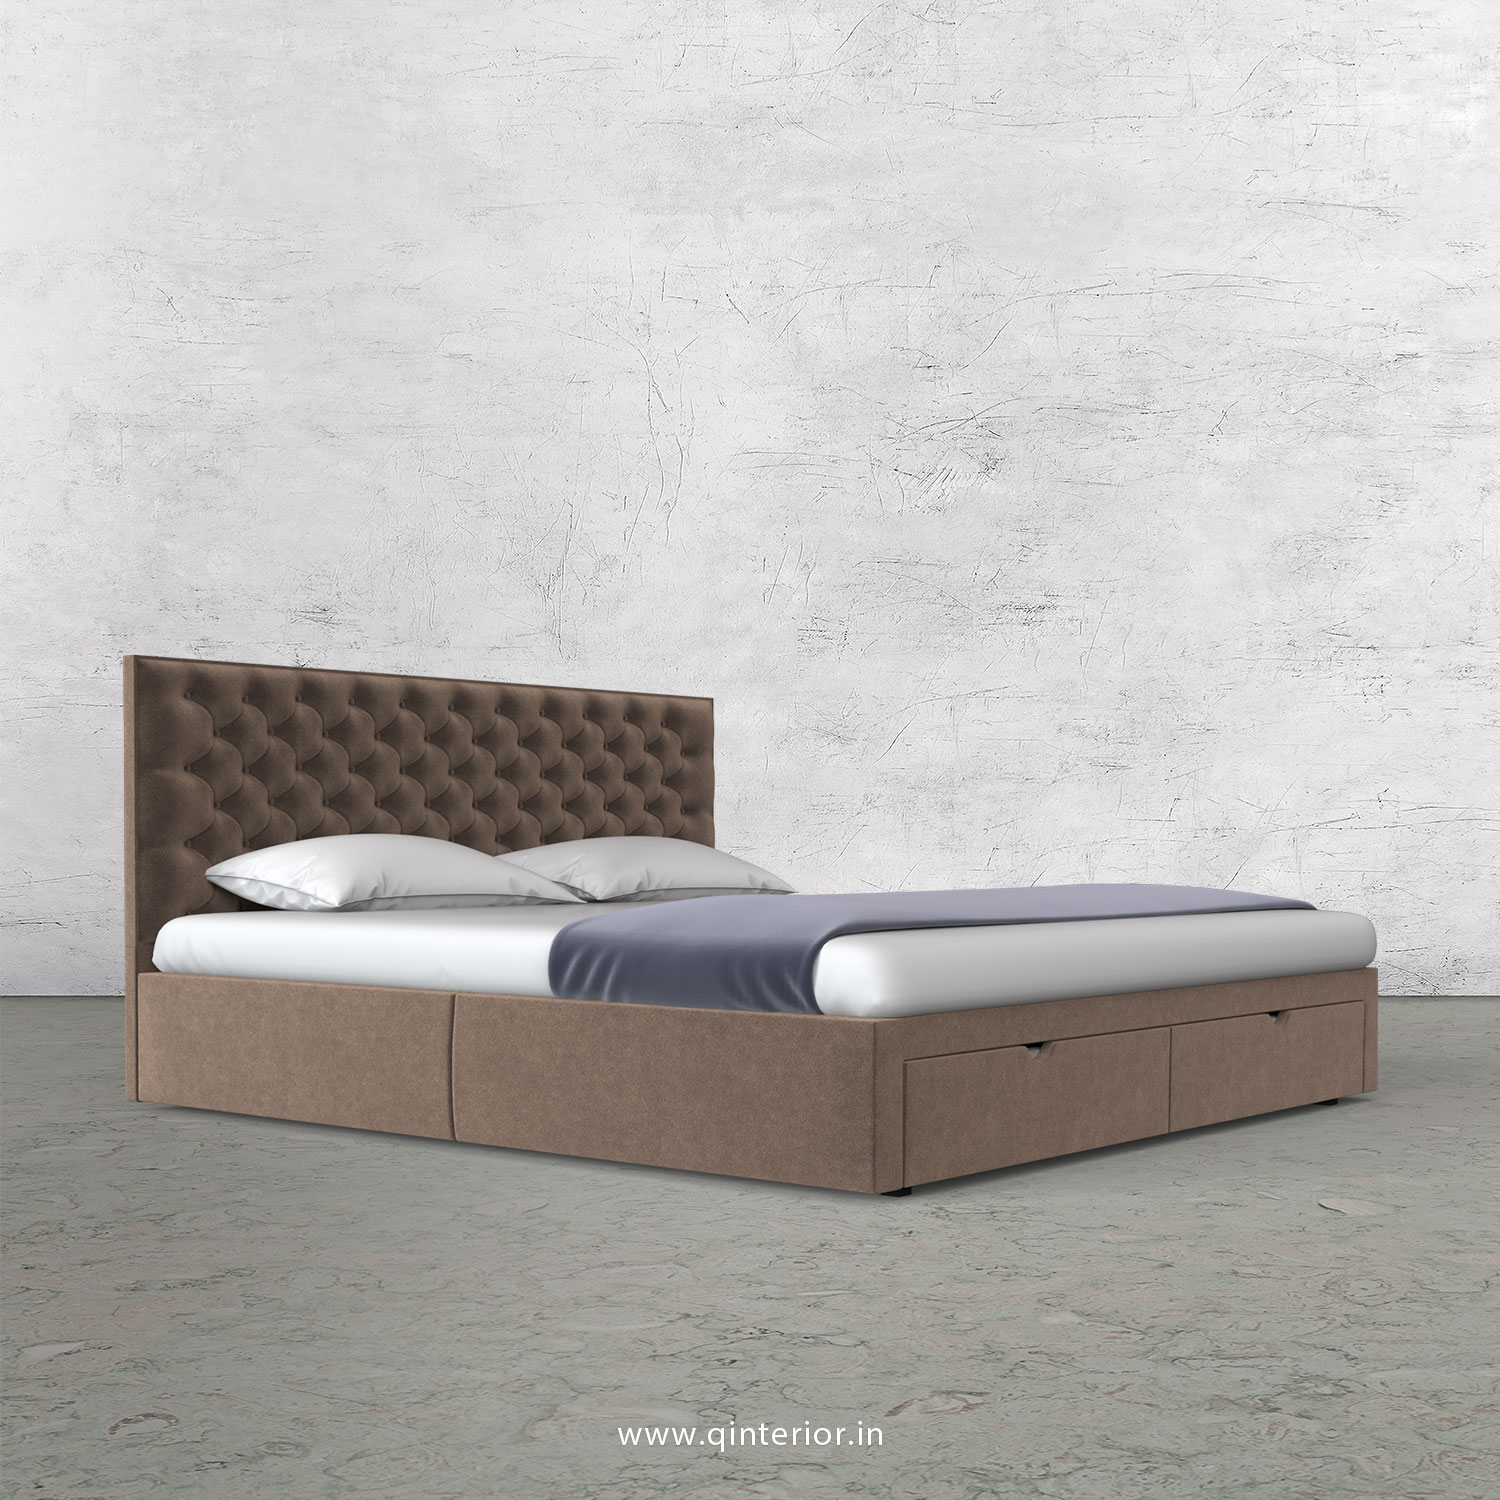 Orion Queen Storage Bed in Velvet Fabric - QBD001 VL02